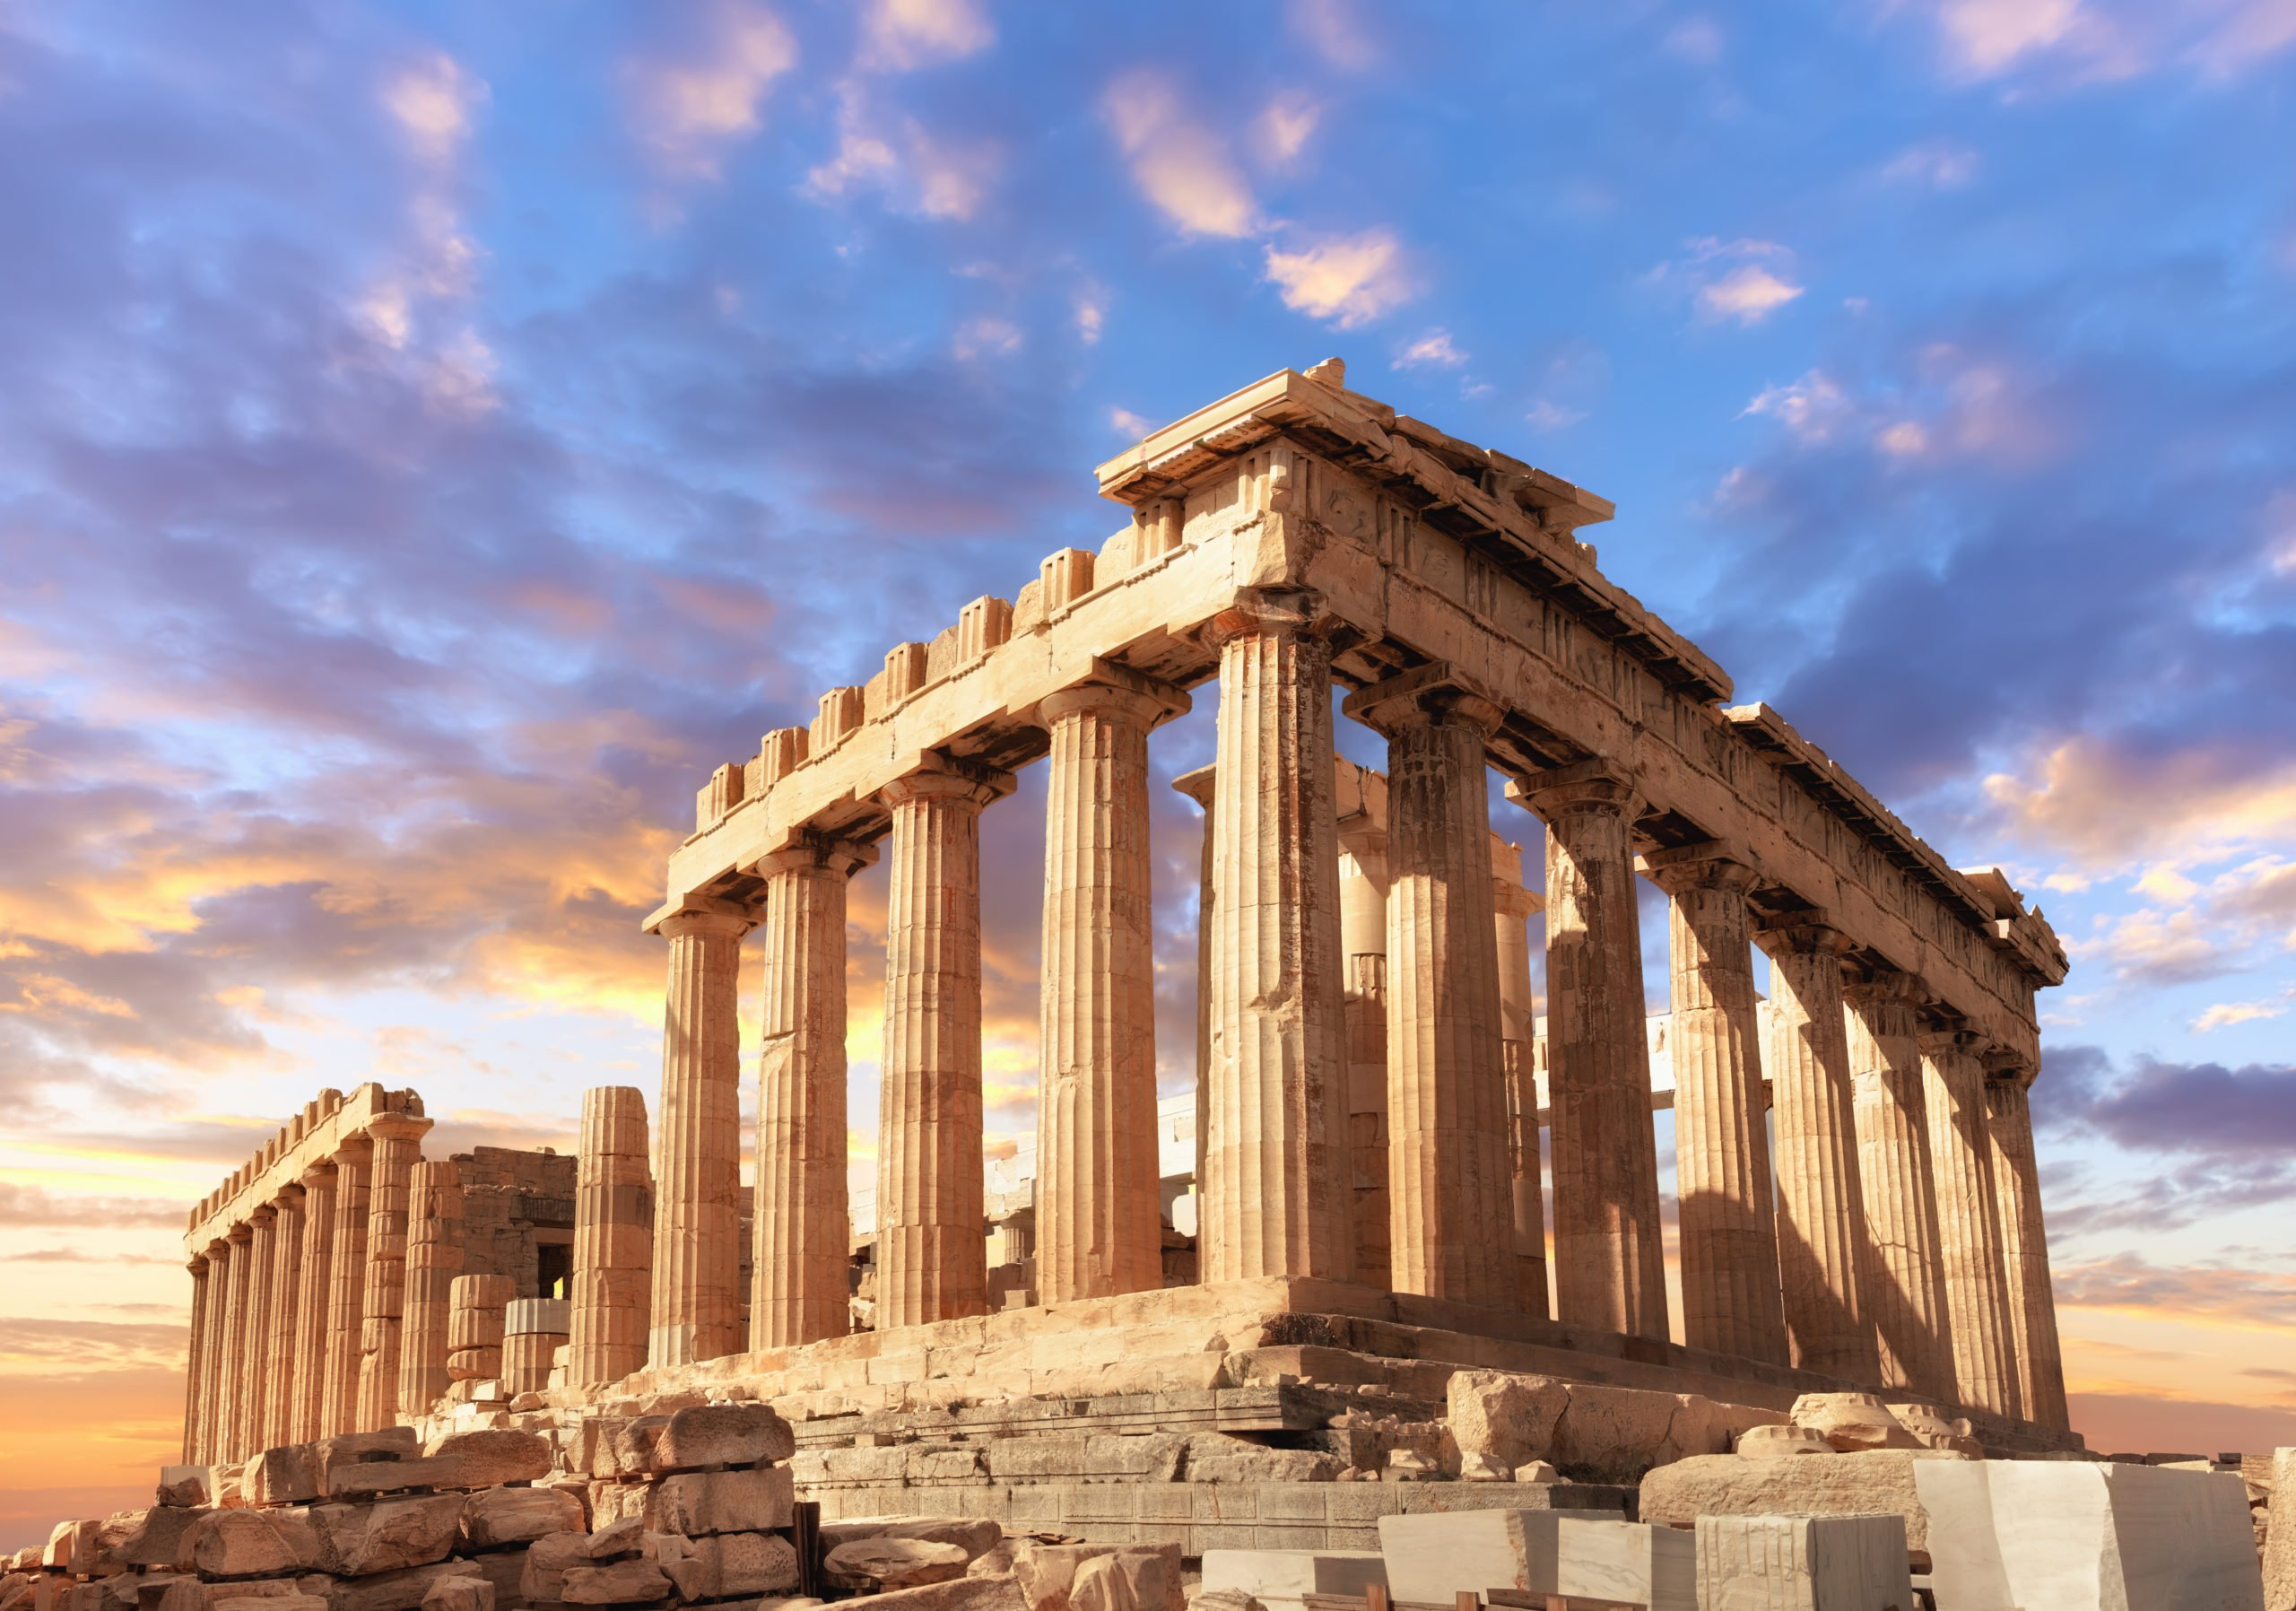 Learn About The Legends Surrounding Cape Sounio On The Sunset Cape Sounio Tour From Athens